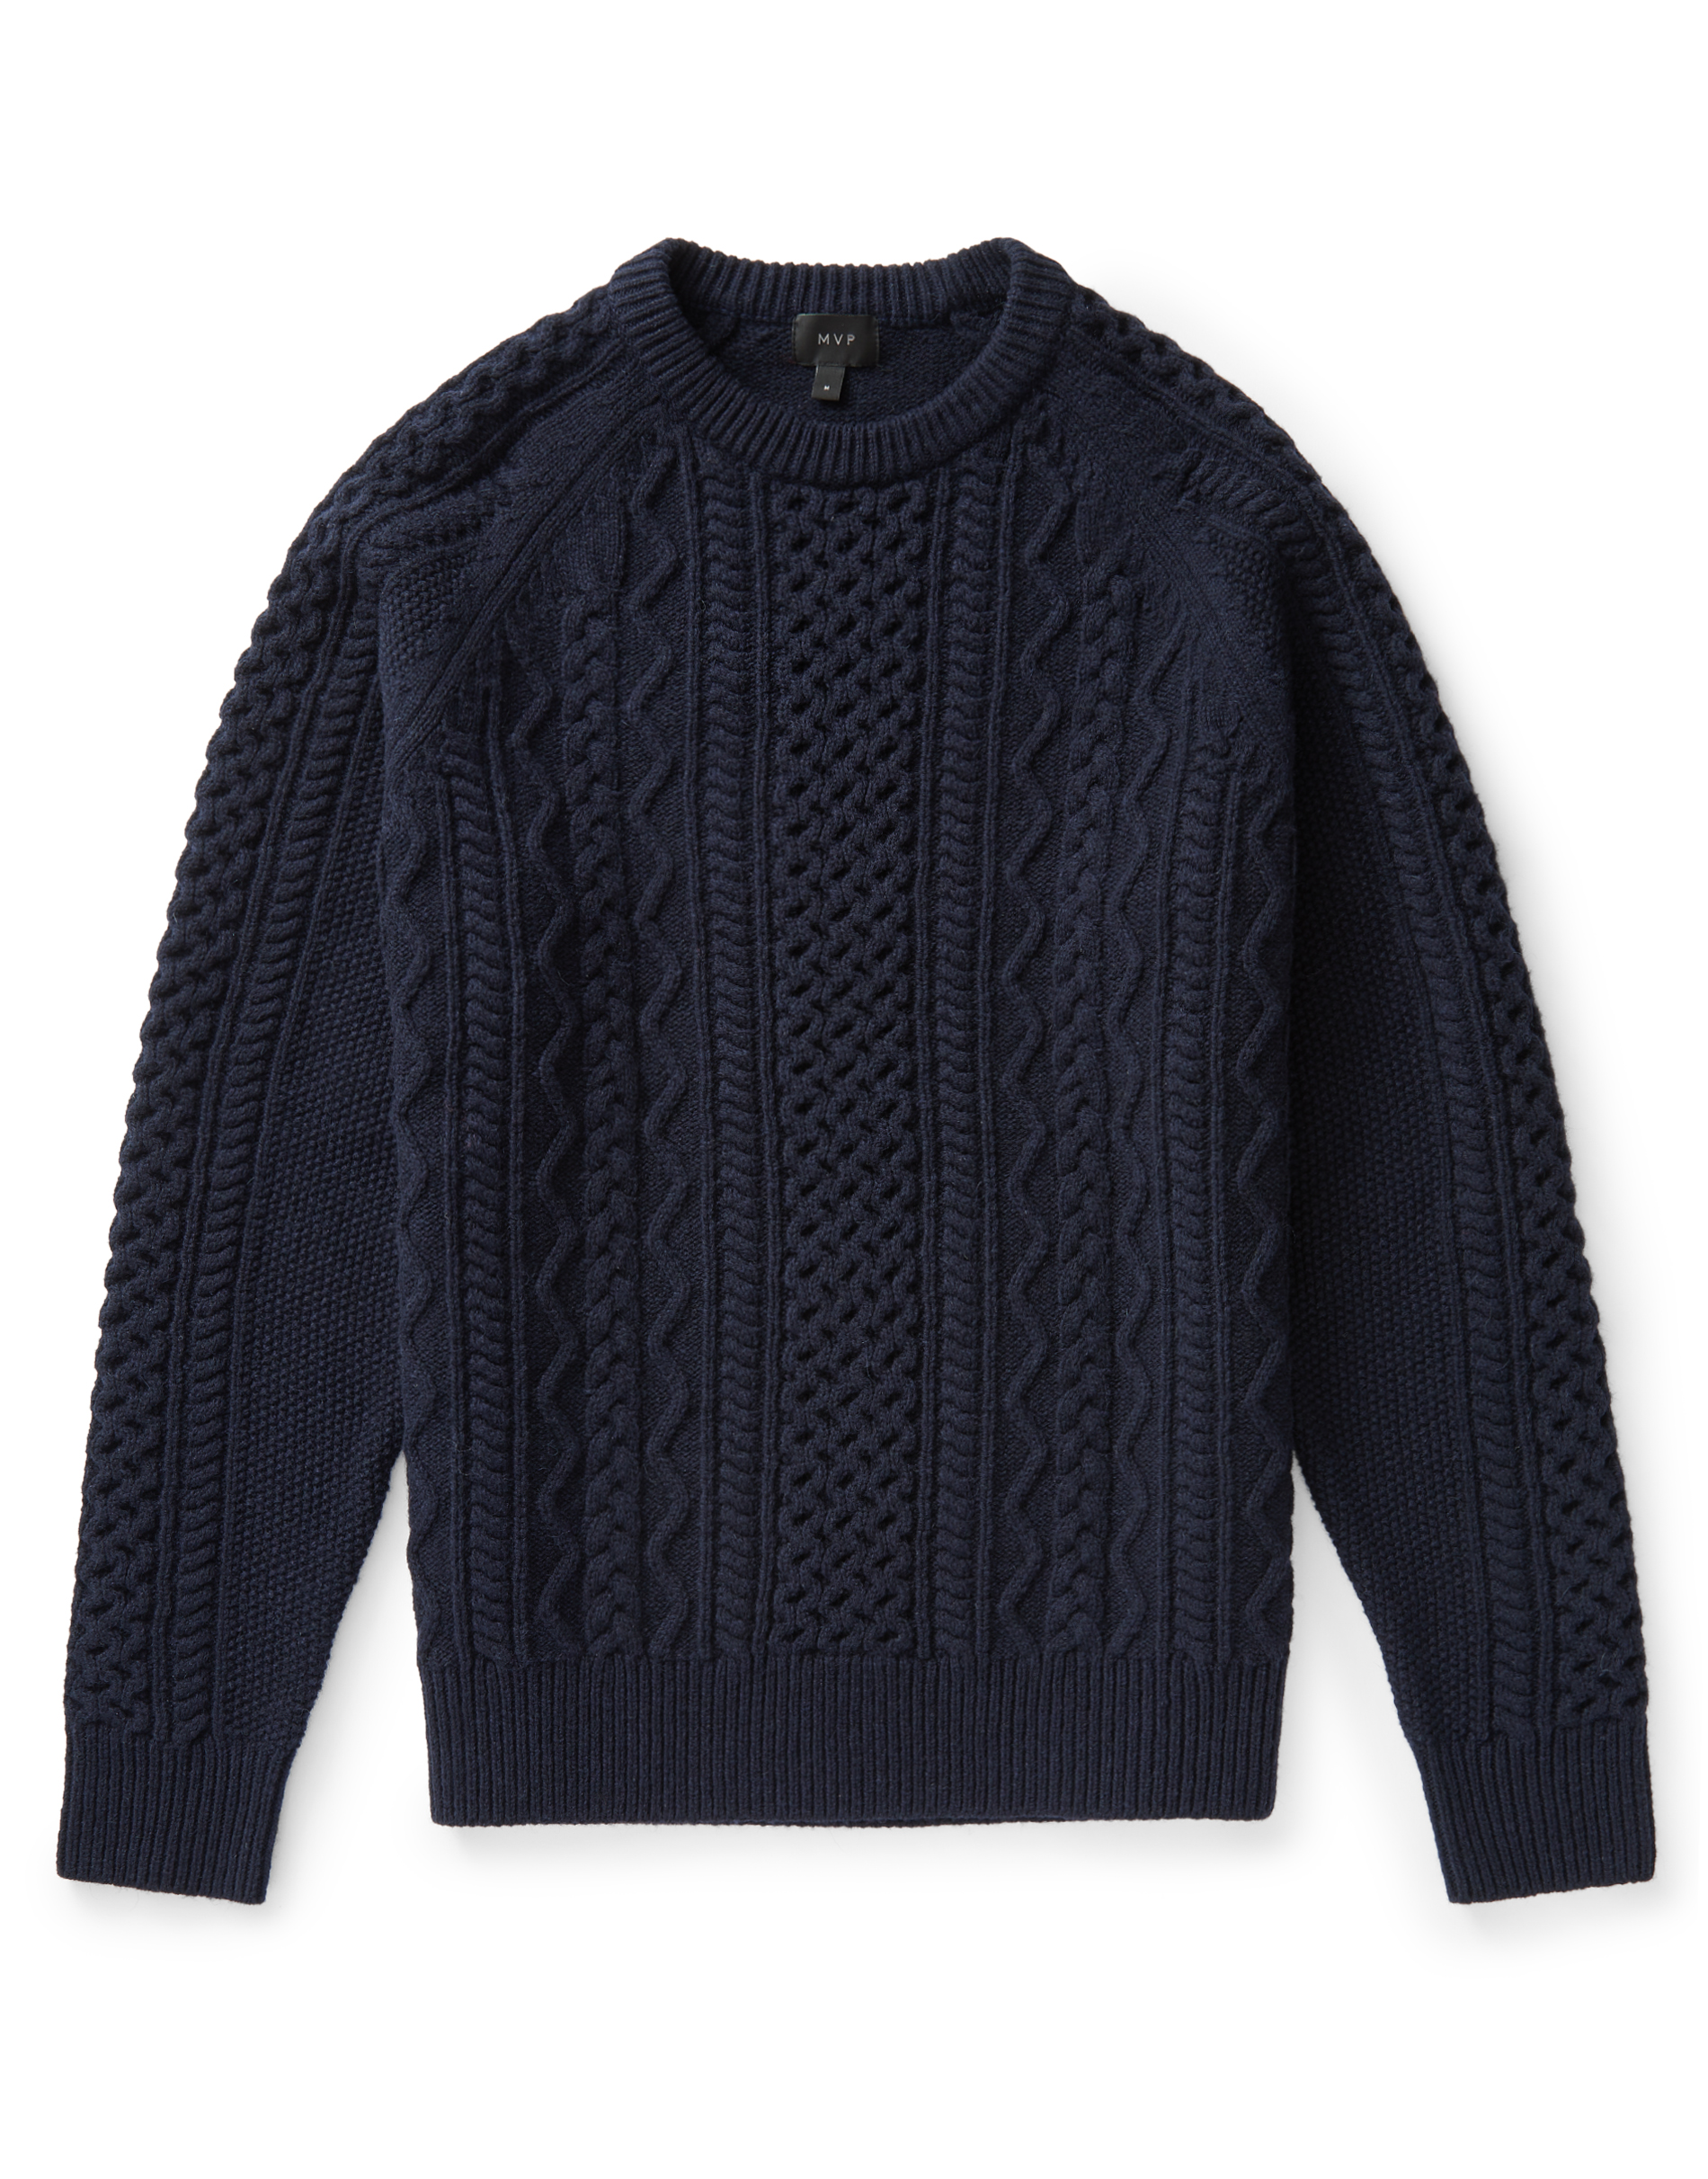 MVP Finnis Lambswool Cable Knit Sweater - Navy